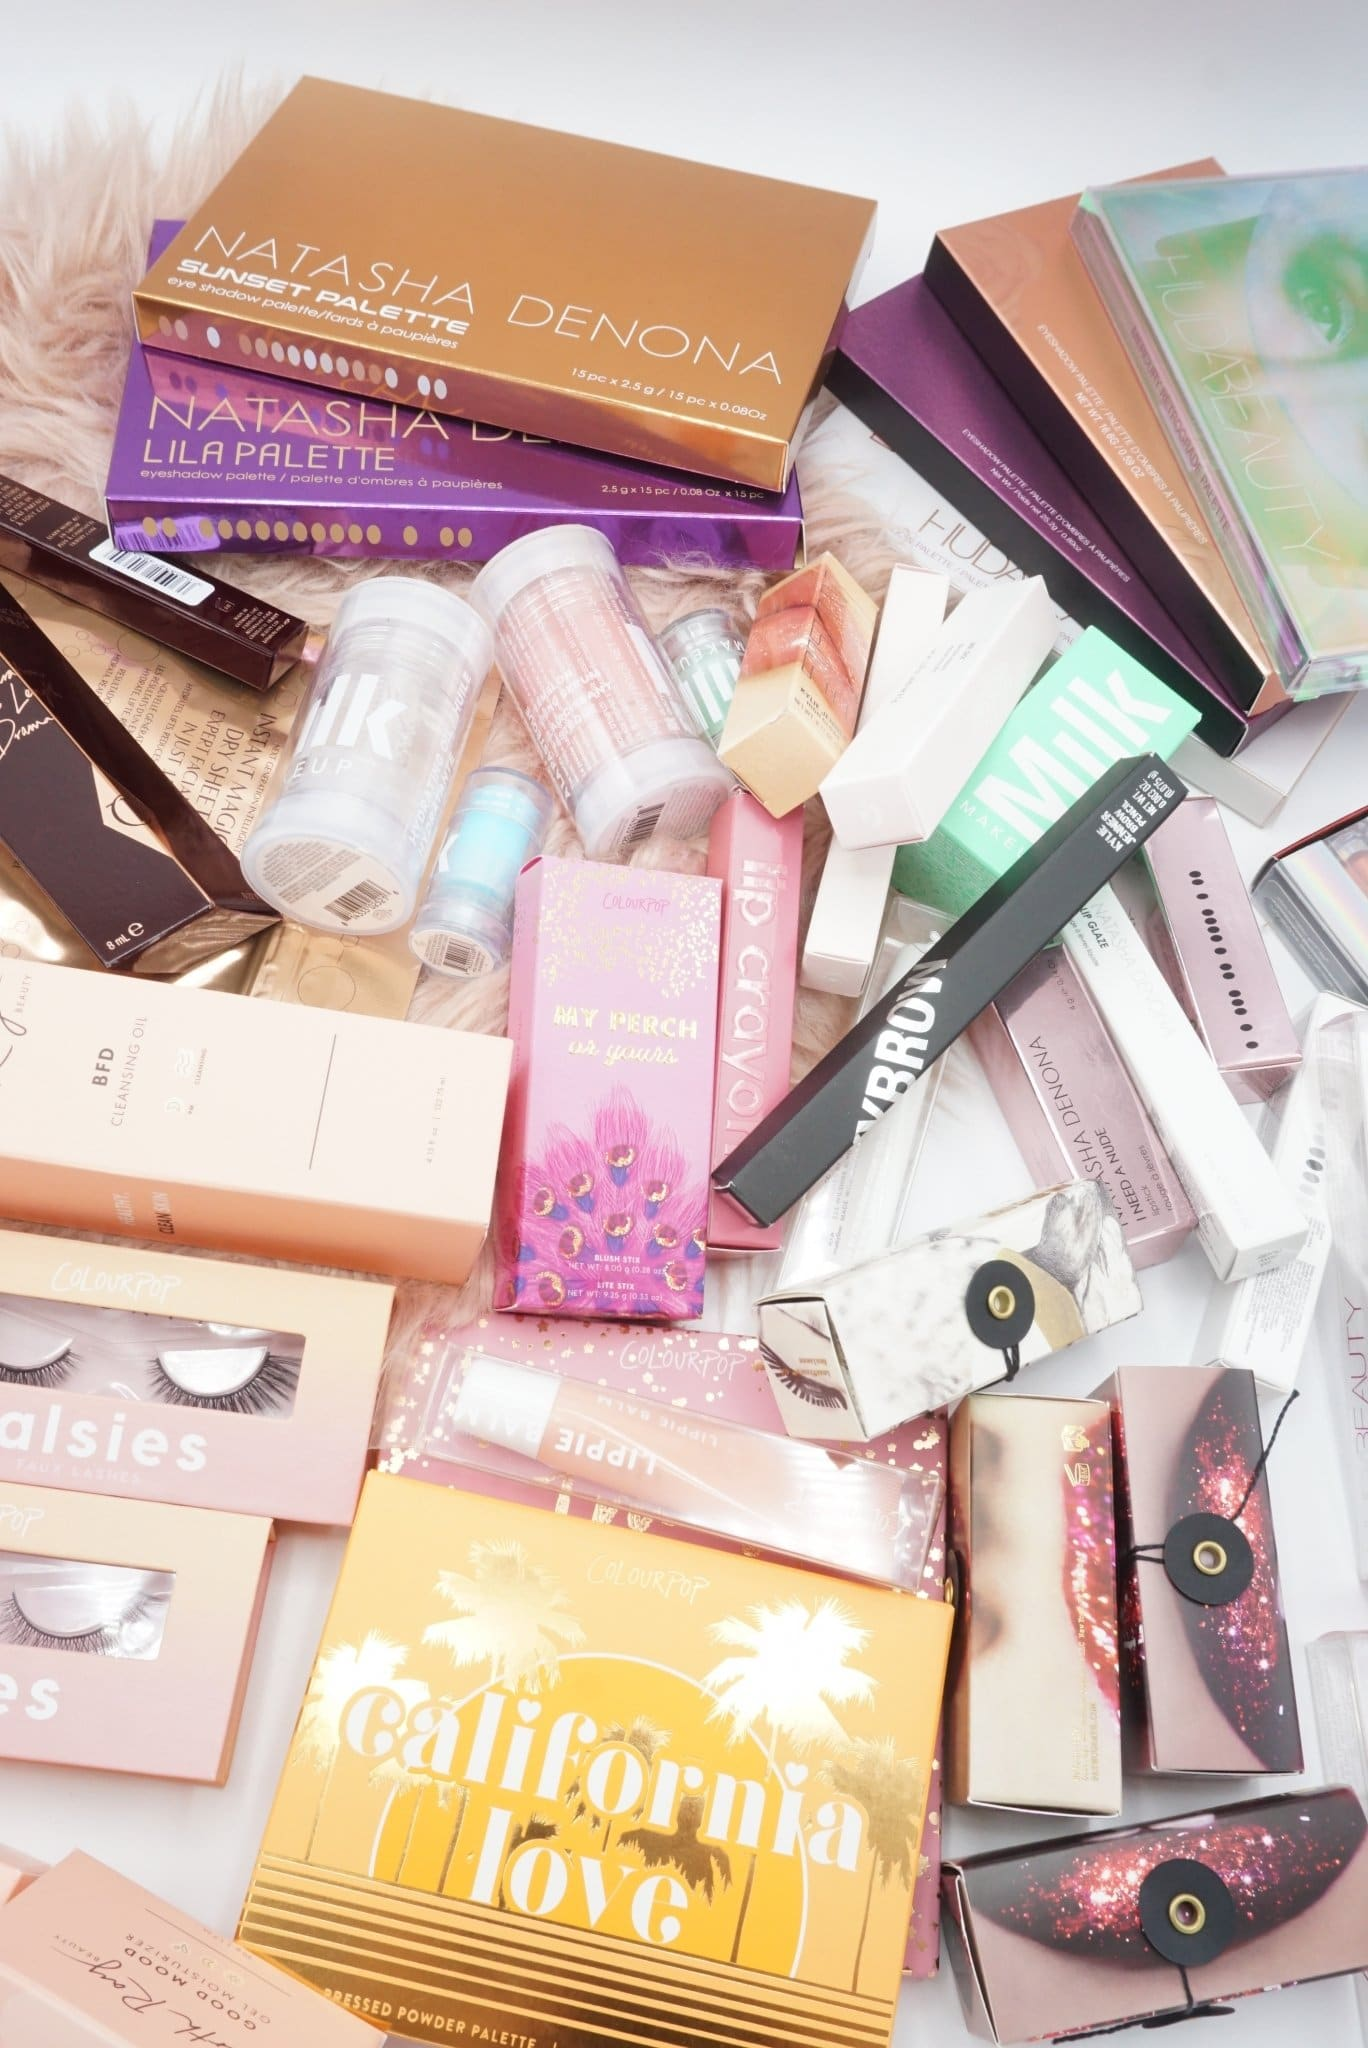 I Bought an Insane Amount of Makeup and Skincare During the Black Friday Sales